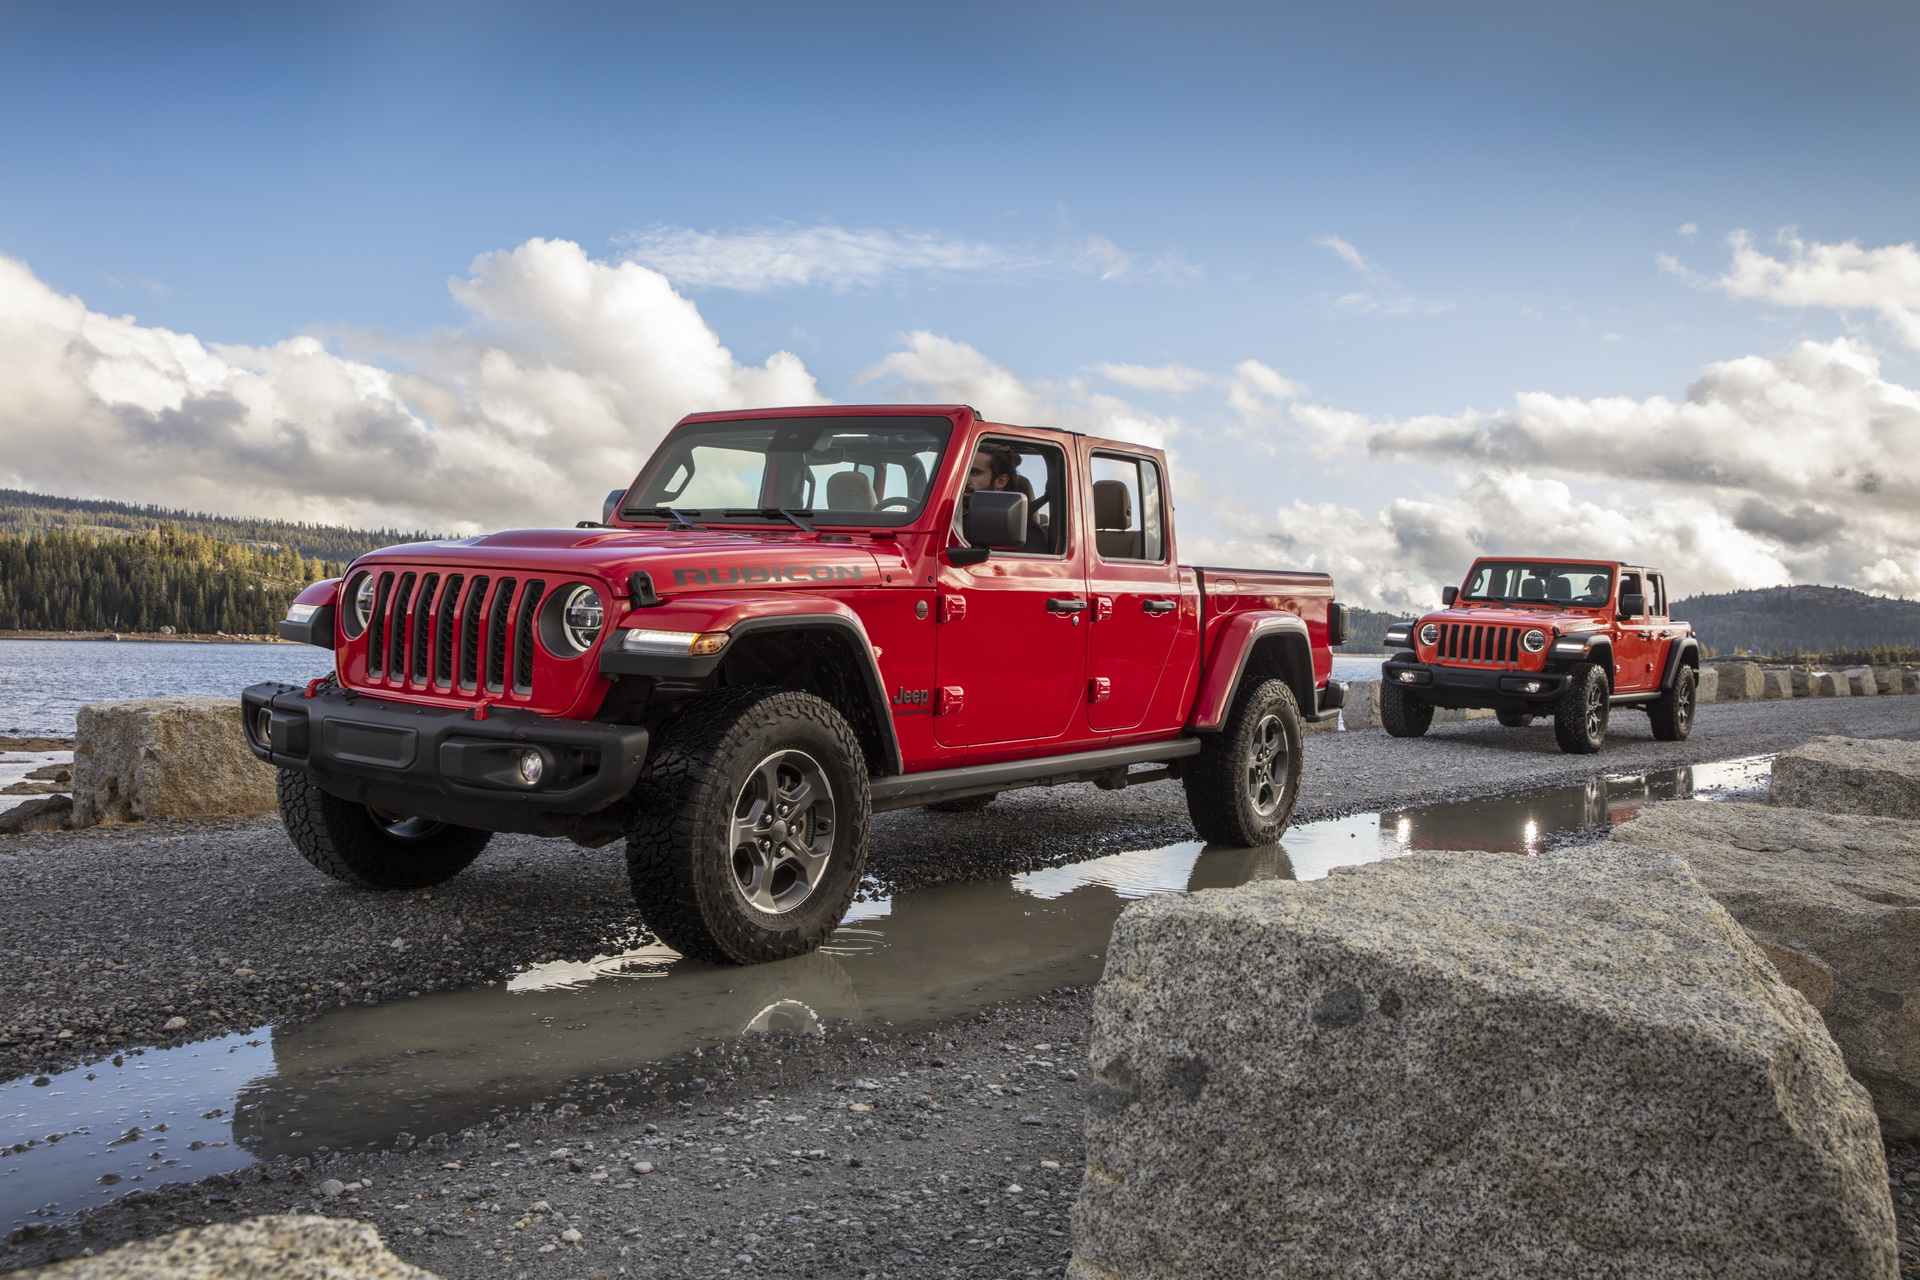 2020-jeep-gladiator-wrangler-rubicon